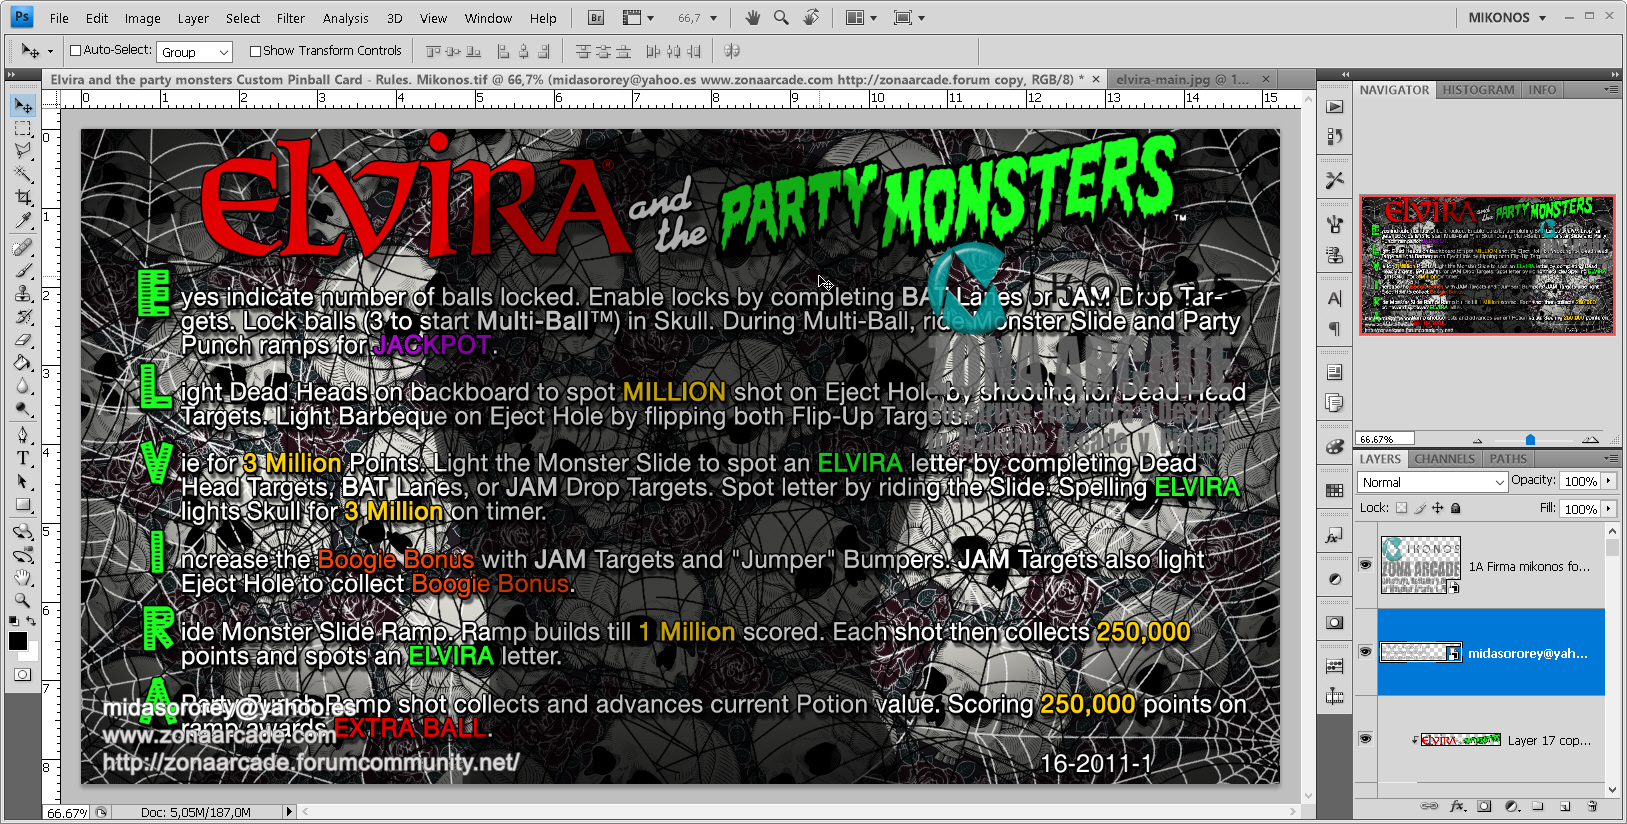 Elvira%20And%20The%20Party%20Monsters%20Pinball%20Card%20Customized%20-%20Rules.%20Mikonos1.jpg